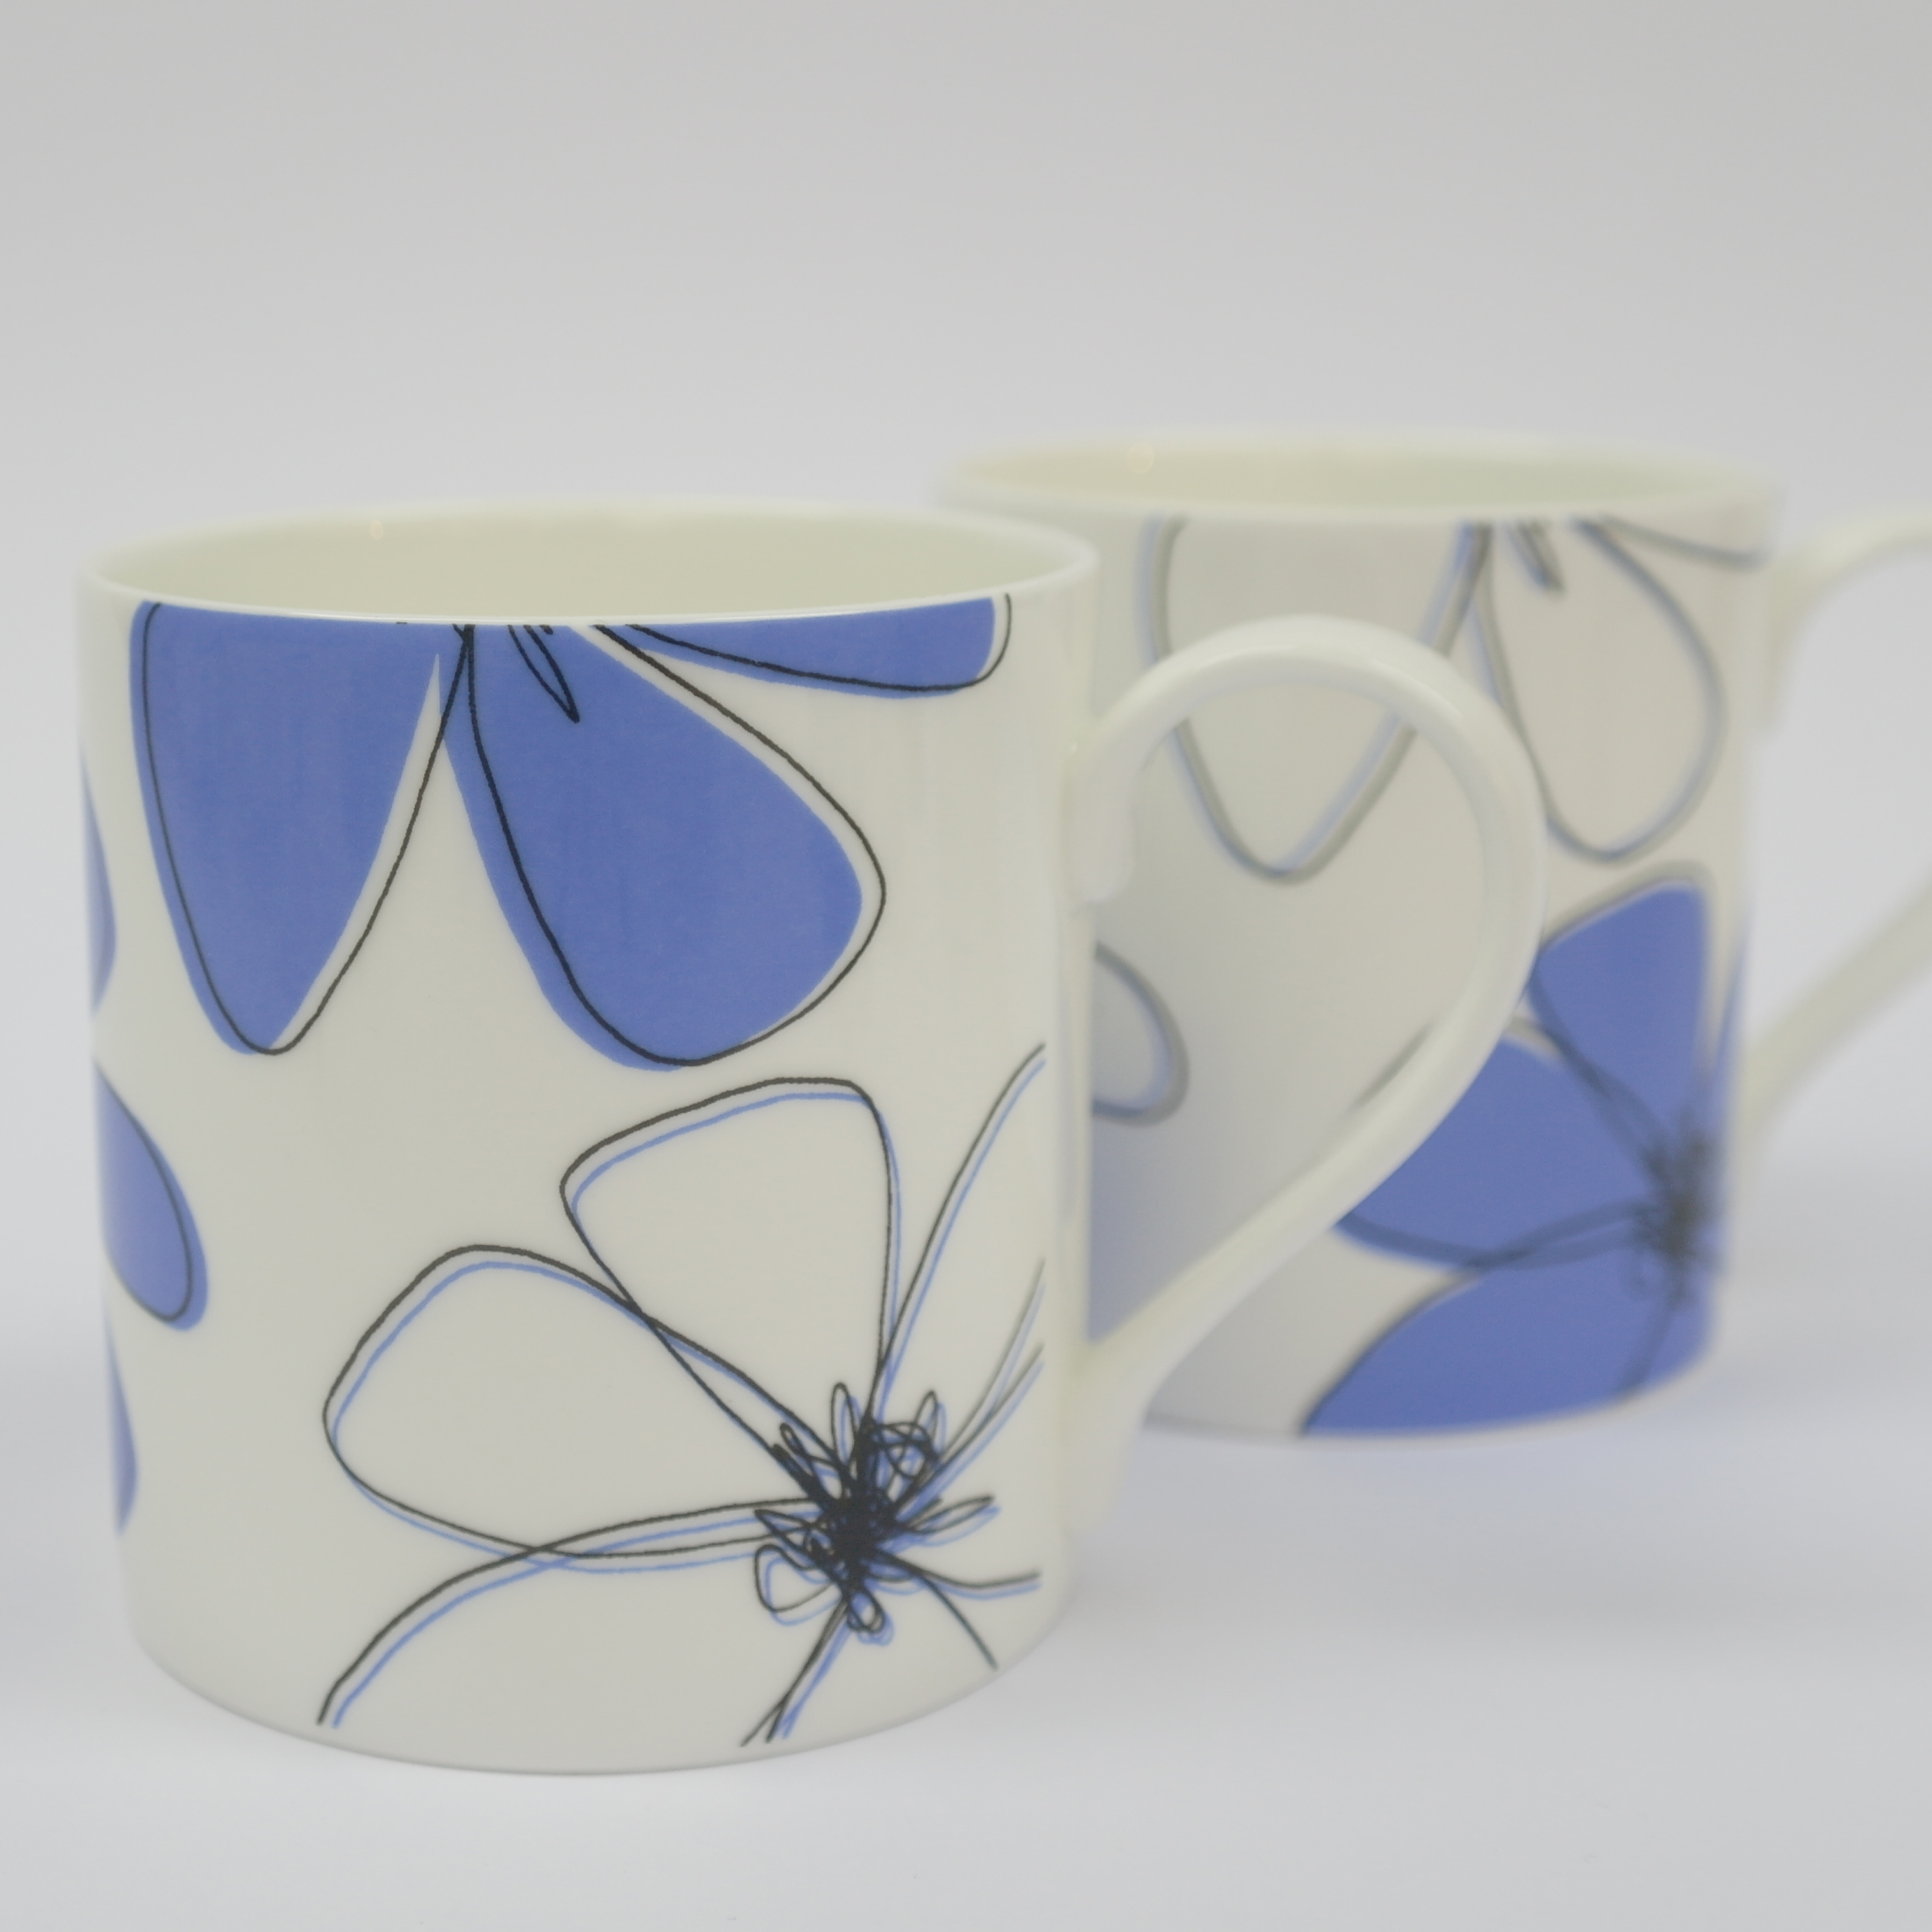 Daisy Closed Floral Mug Boxed (English Fine Bone China) Available in 6 Colourways